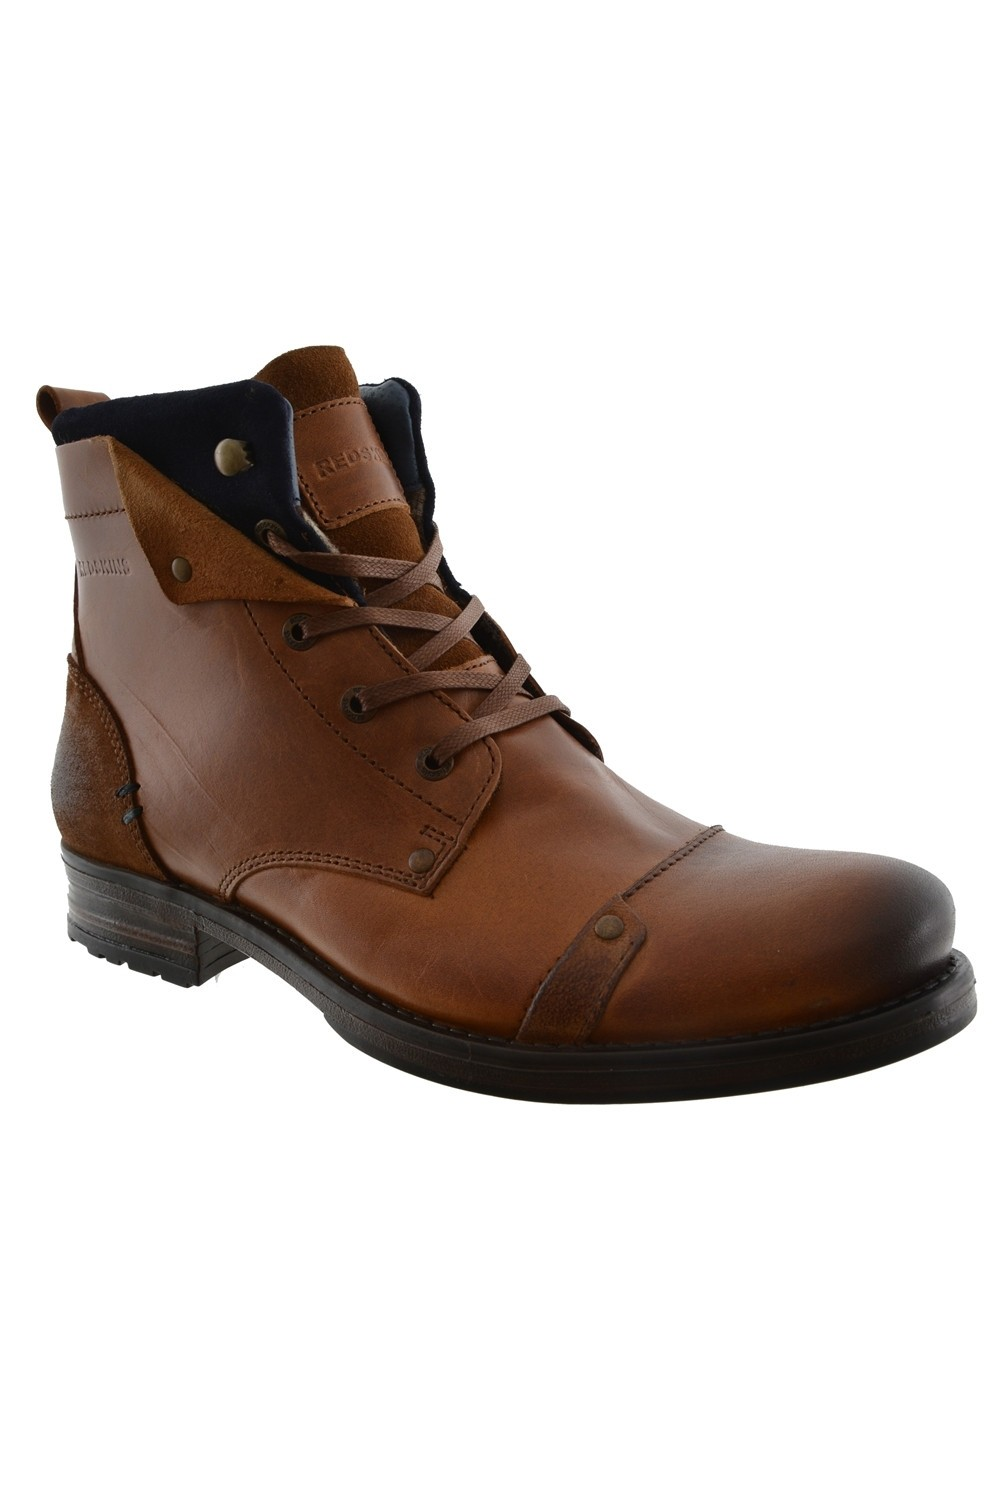 Marron Chaussures Redskins Yedes Référence Chaussures Référence Redskins xHqYR